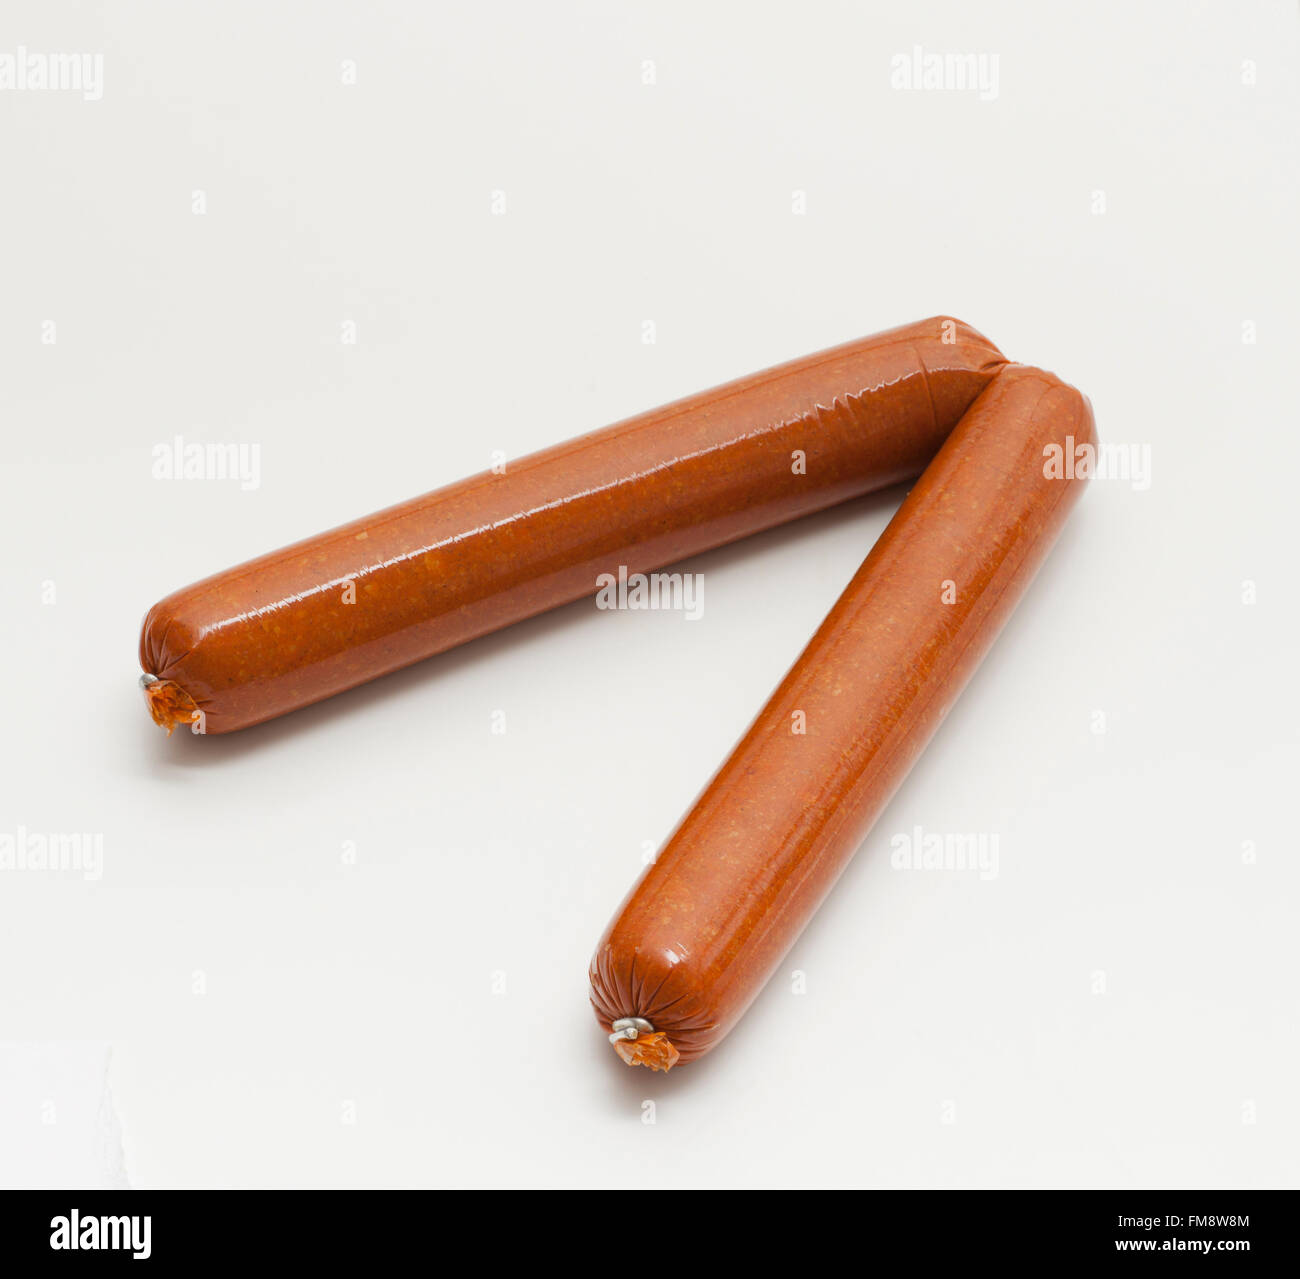 Soy Chorizo, Spanish-style vegetarian sausage from America, made with soya beans, flavoured with paprika, stuffed - Stock Image